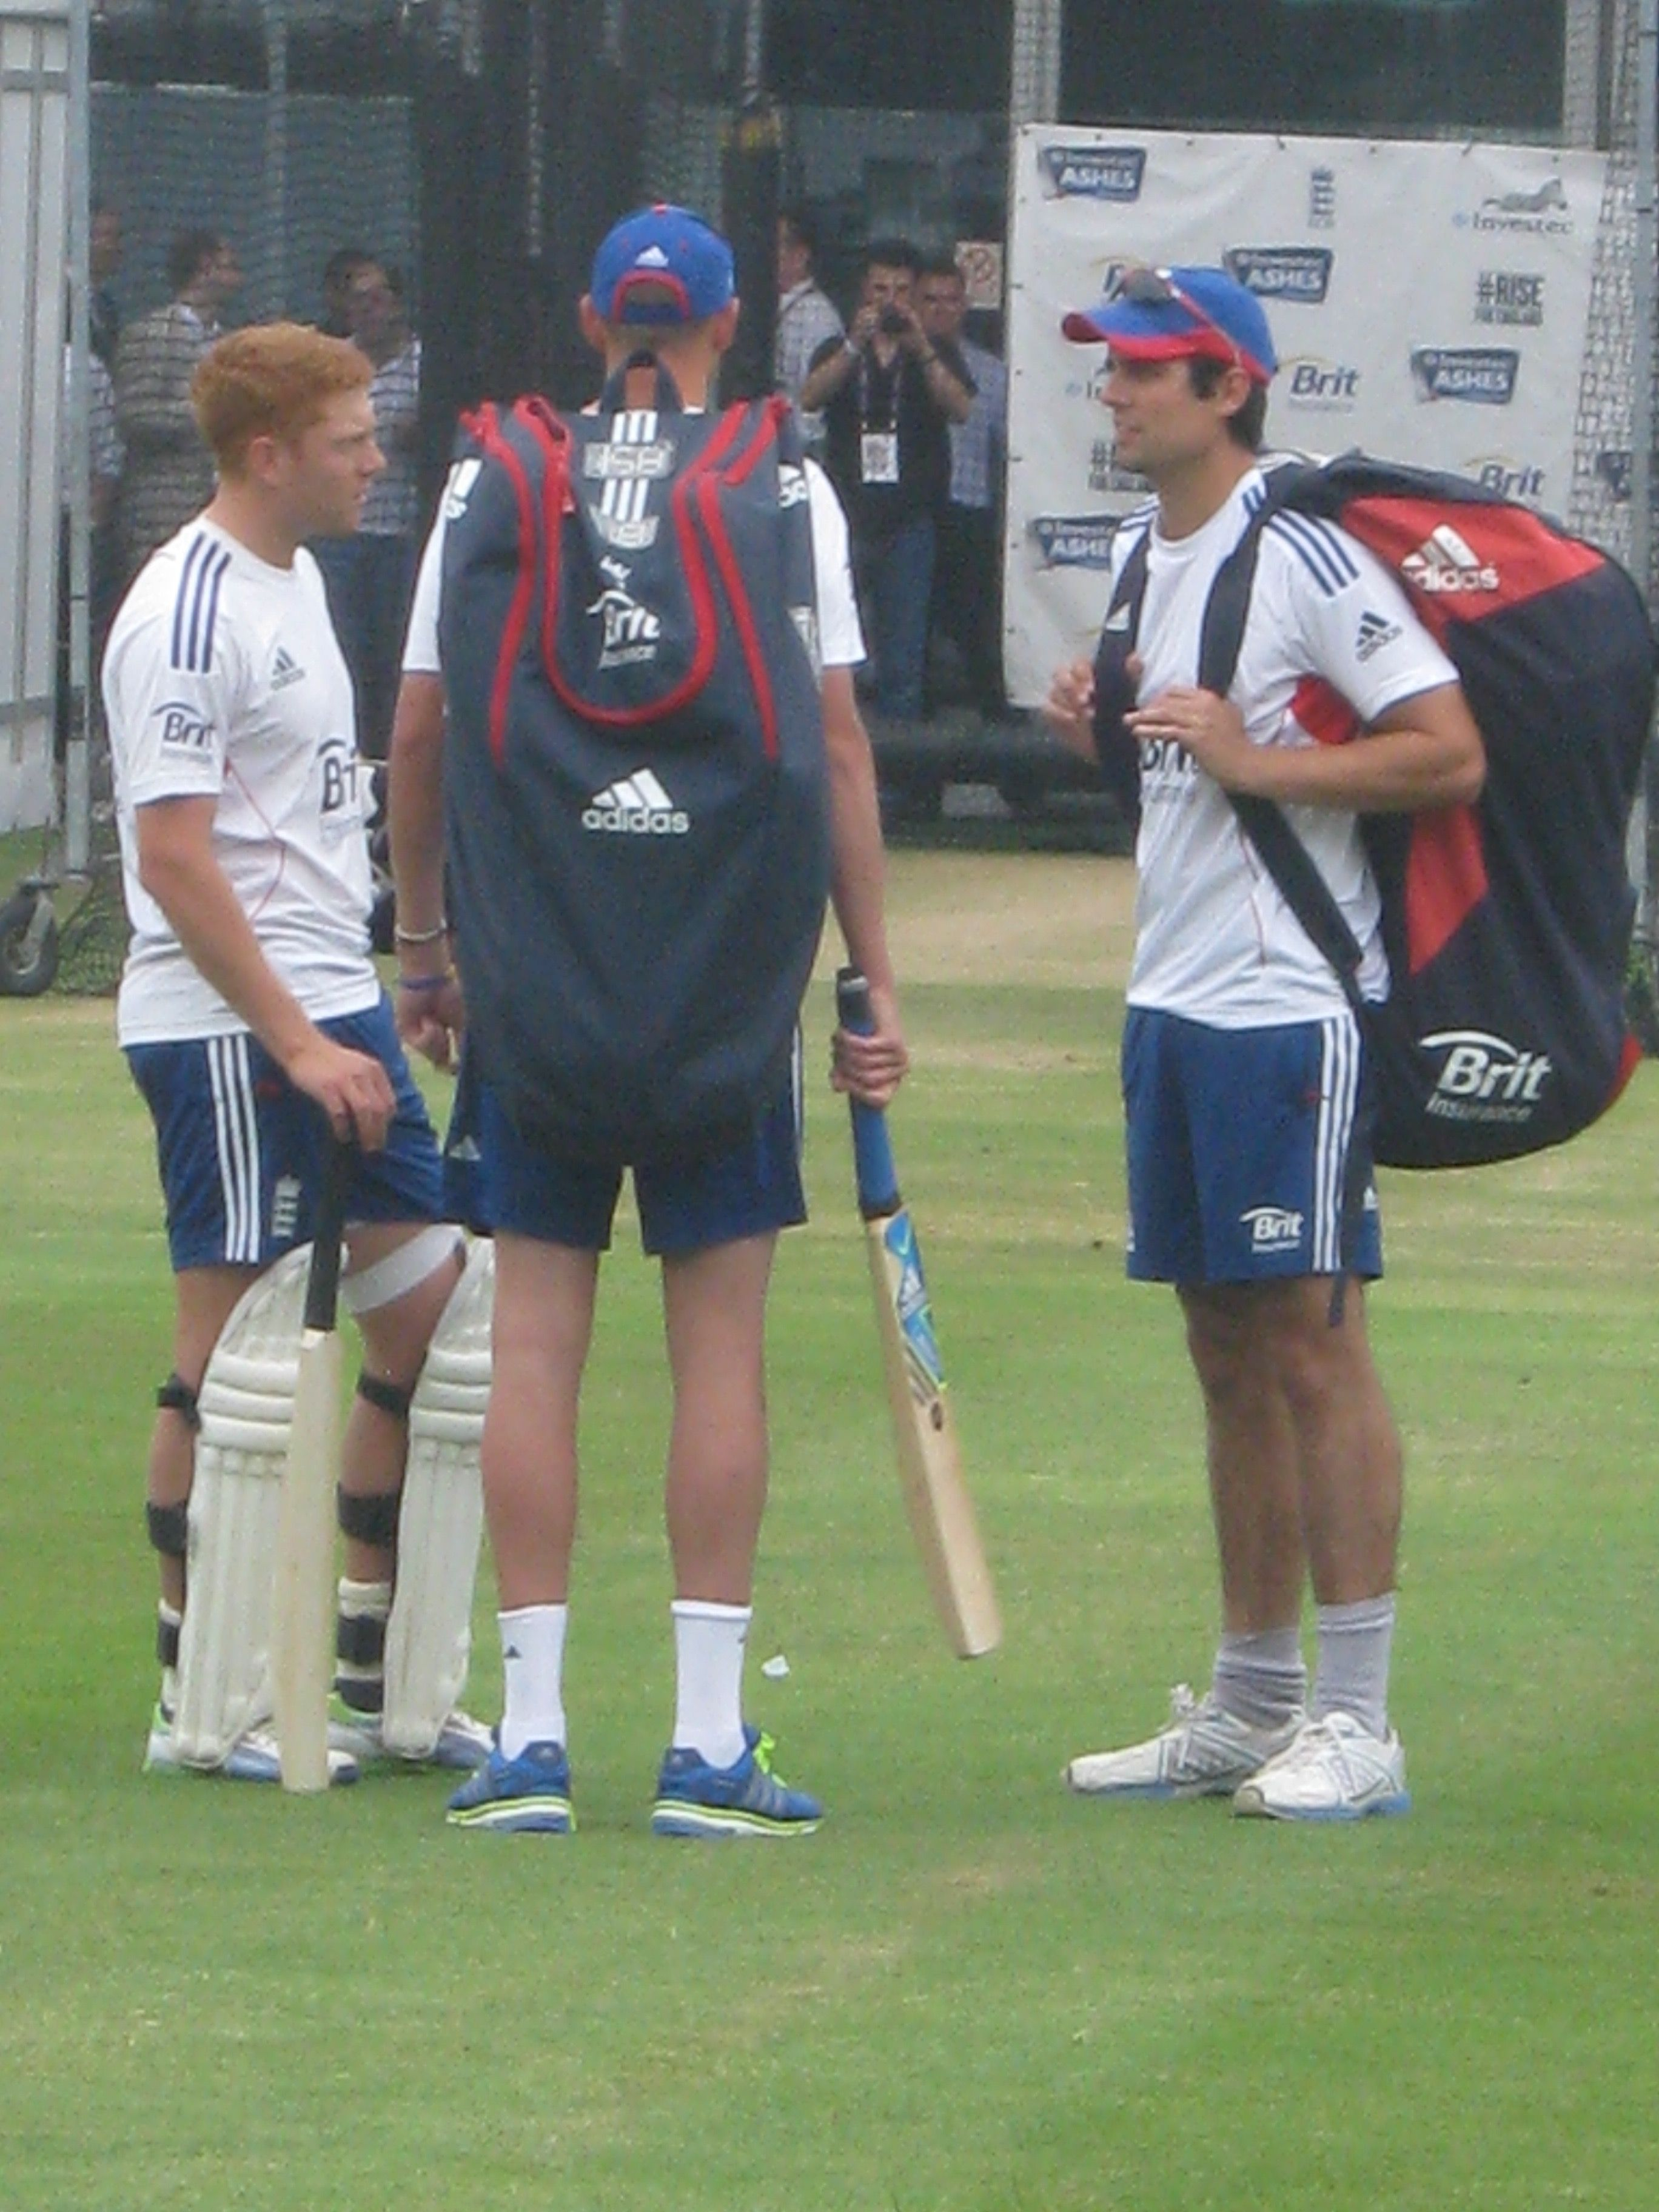 Jonny Bairstow, Alastair Cook and Stuart Broad at Lord's 2013